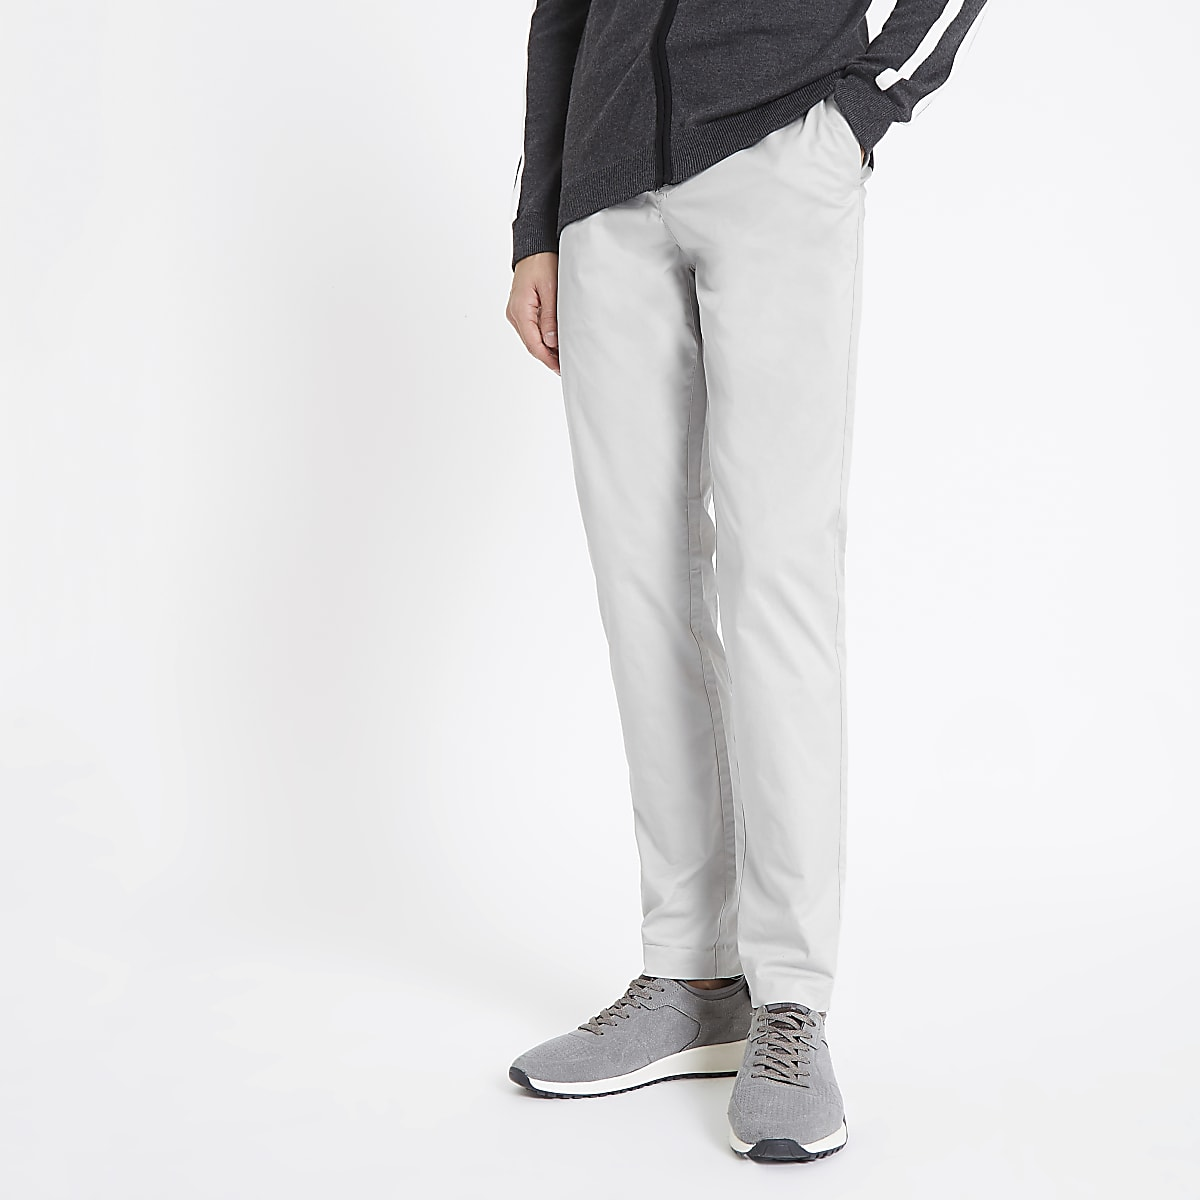 Light grey skinny smart trousers